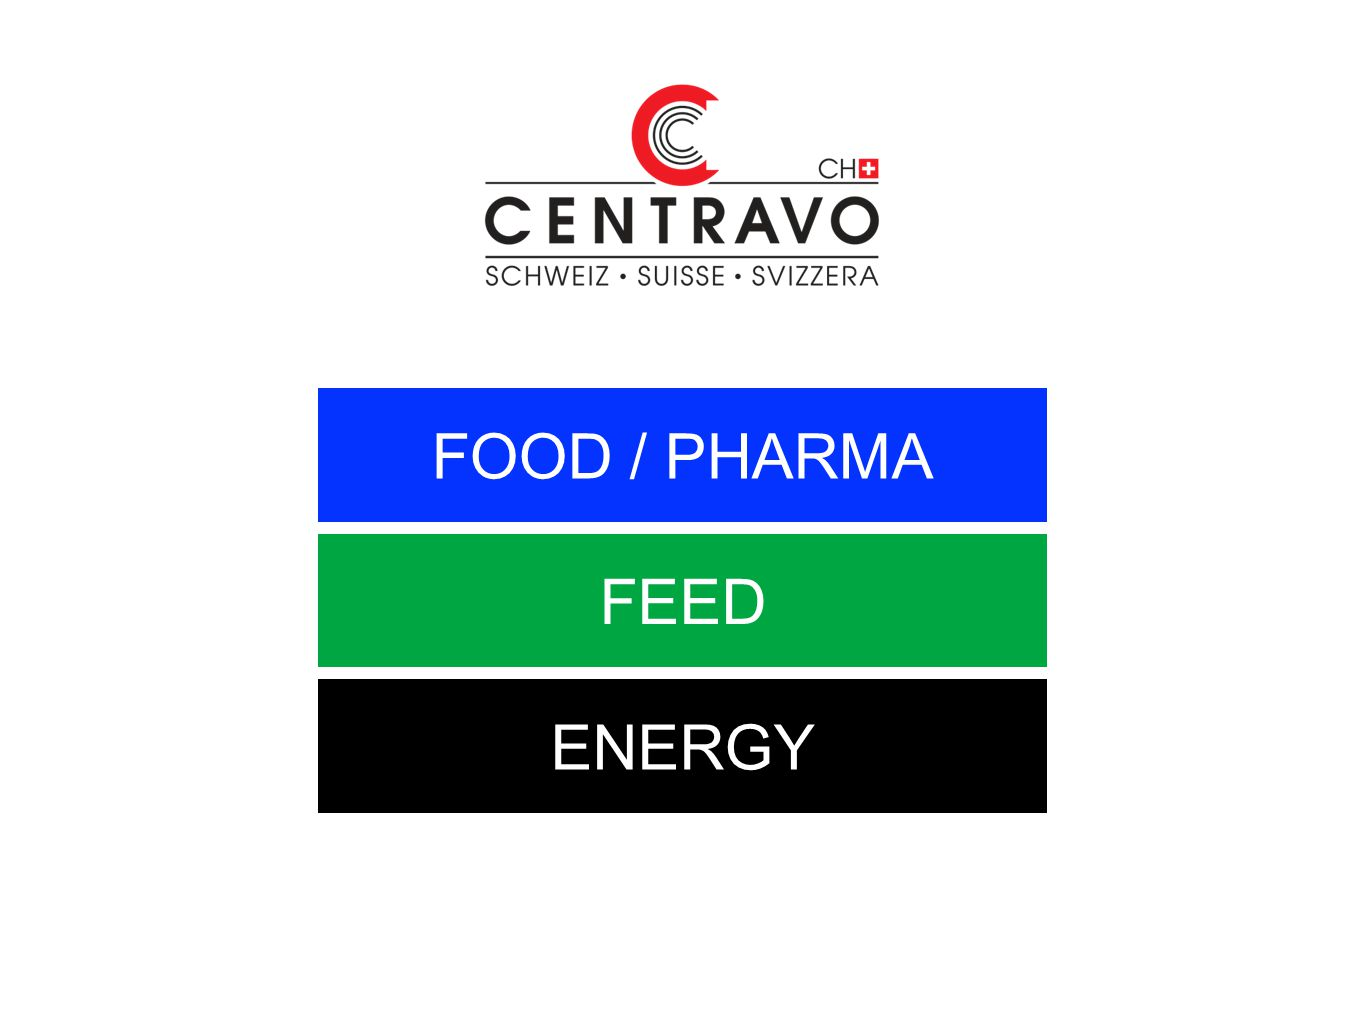 FOOD / PHARMA FEED ENERGY